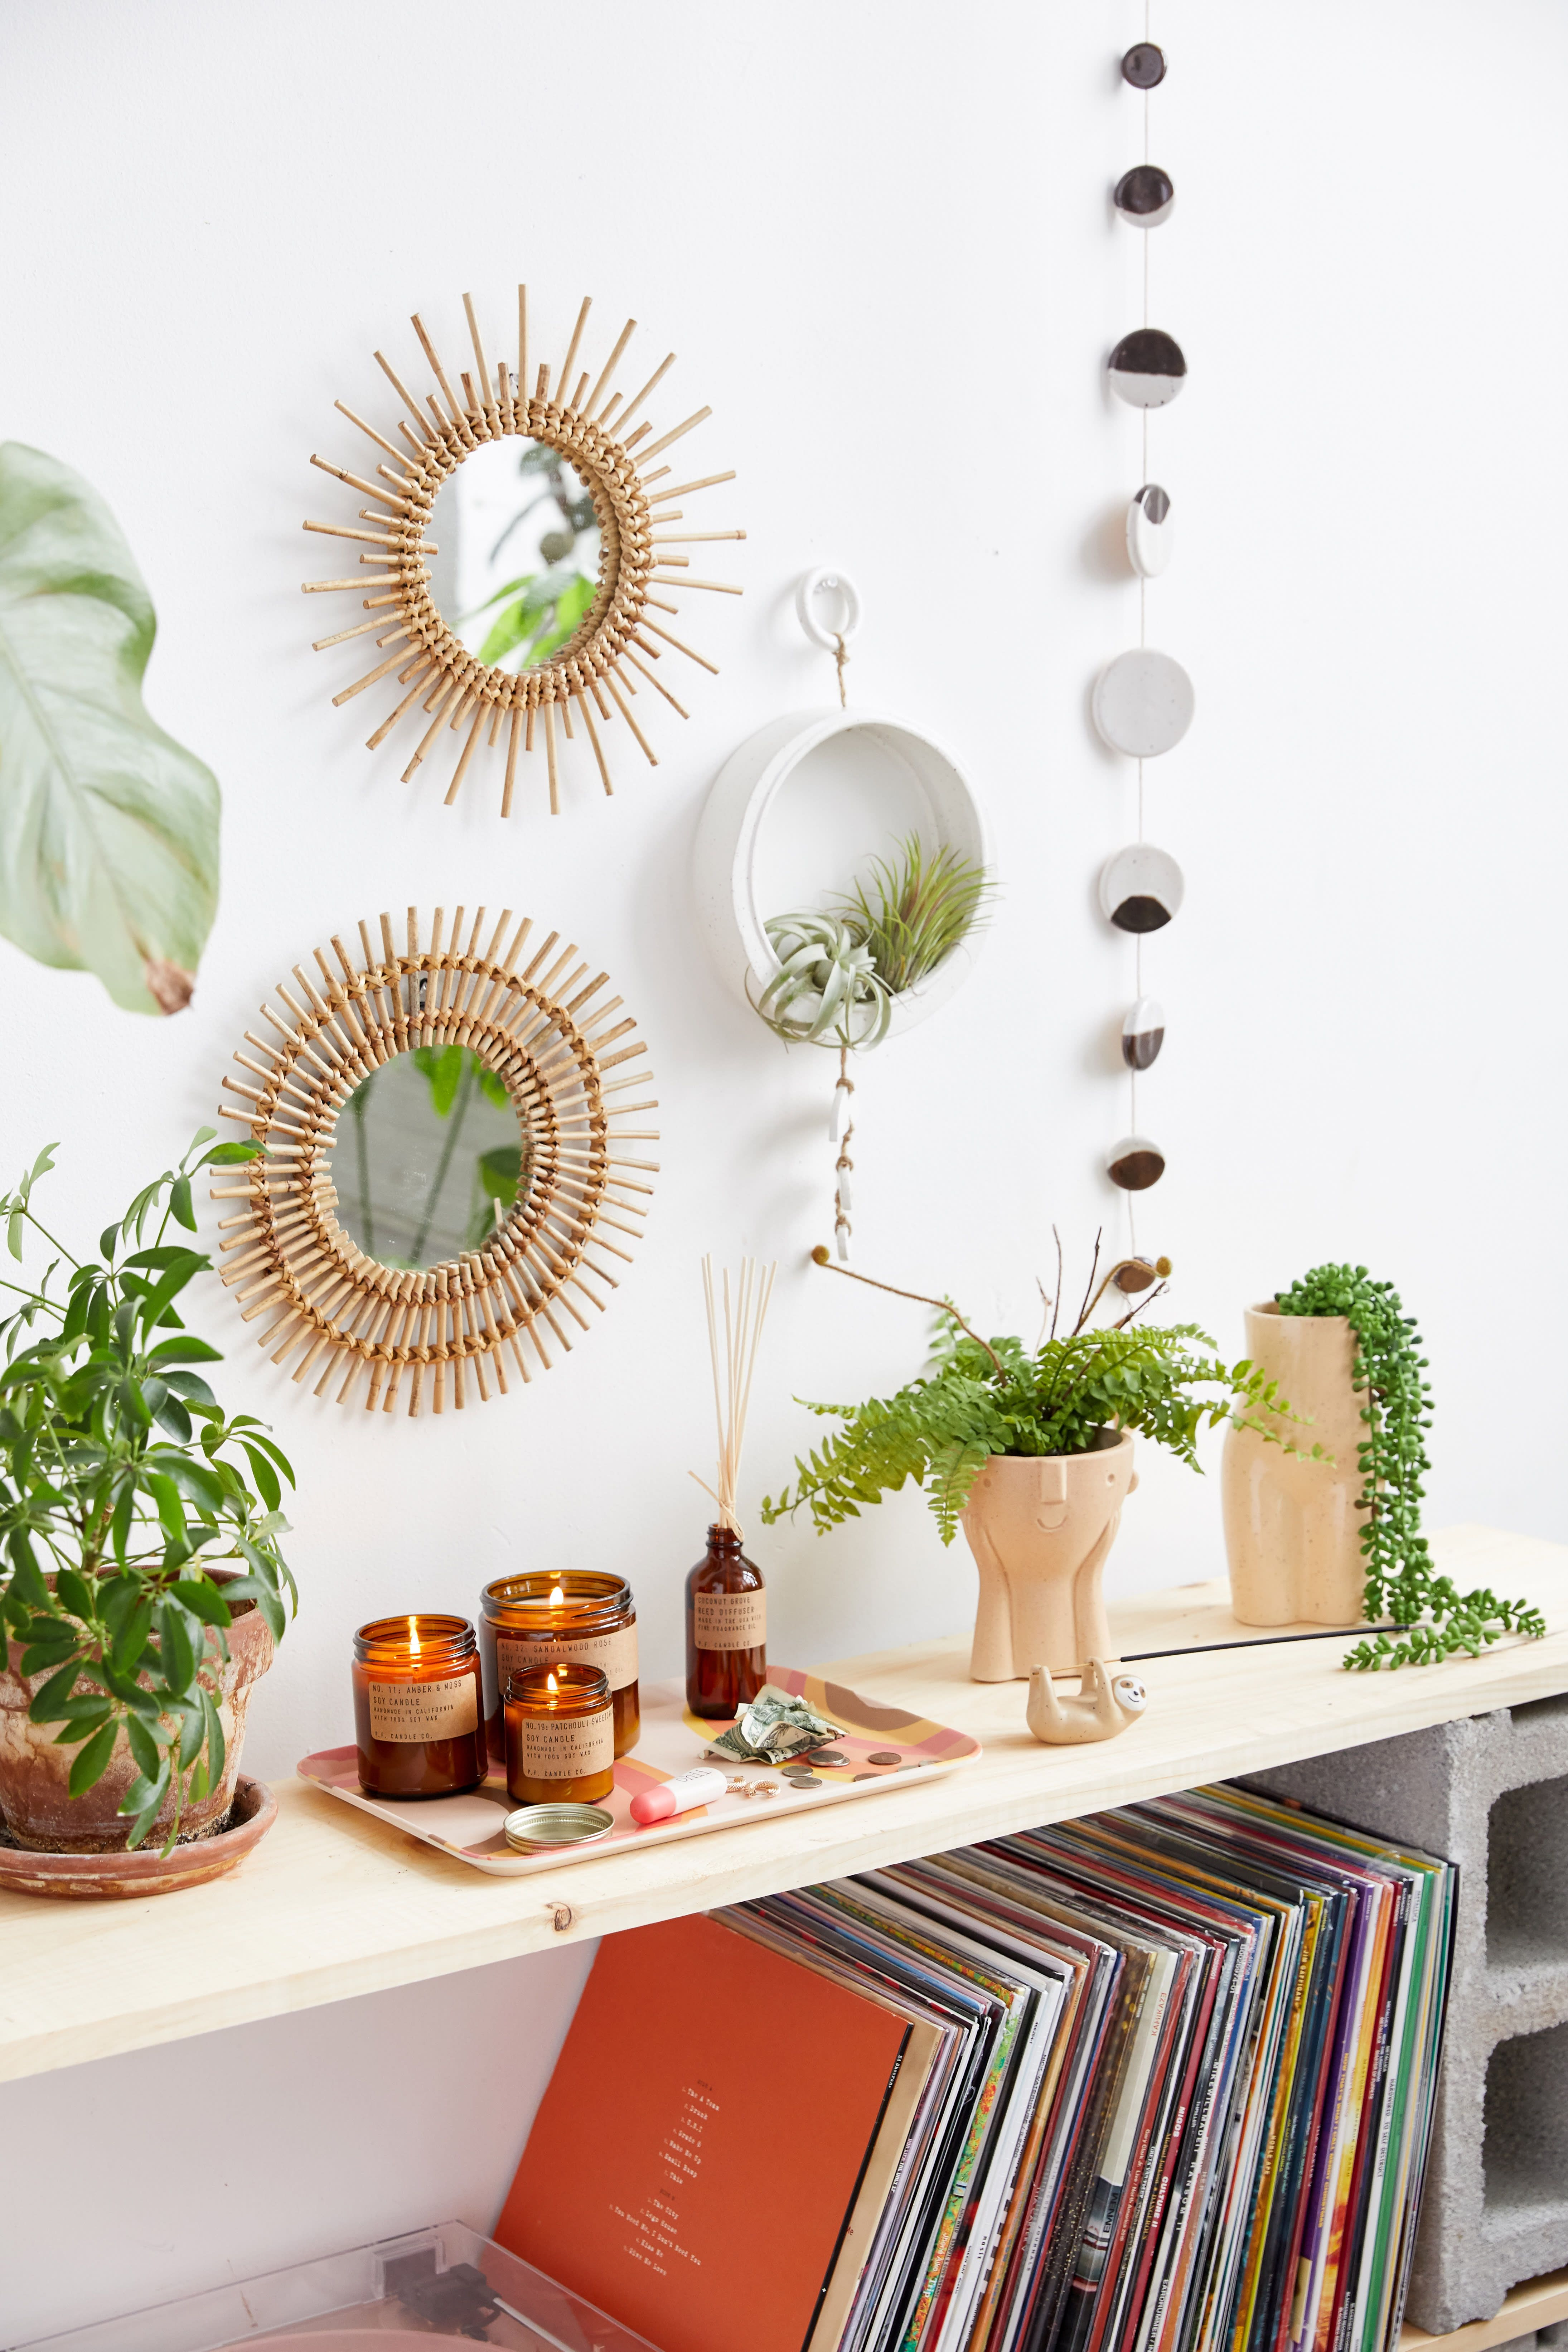 Urban Outfitters Home Has Dorm Decor Essentials We Want For Our